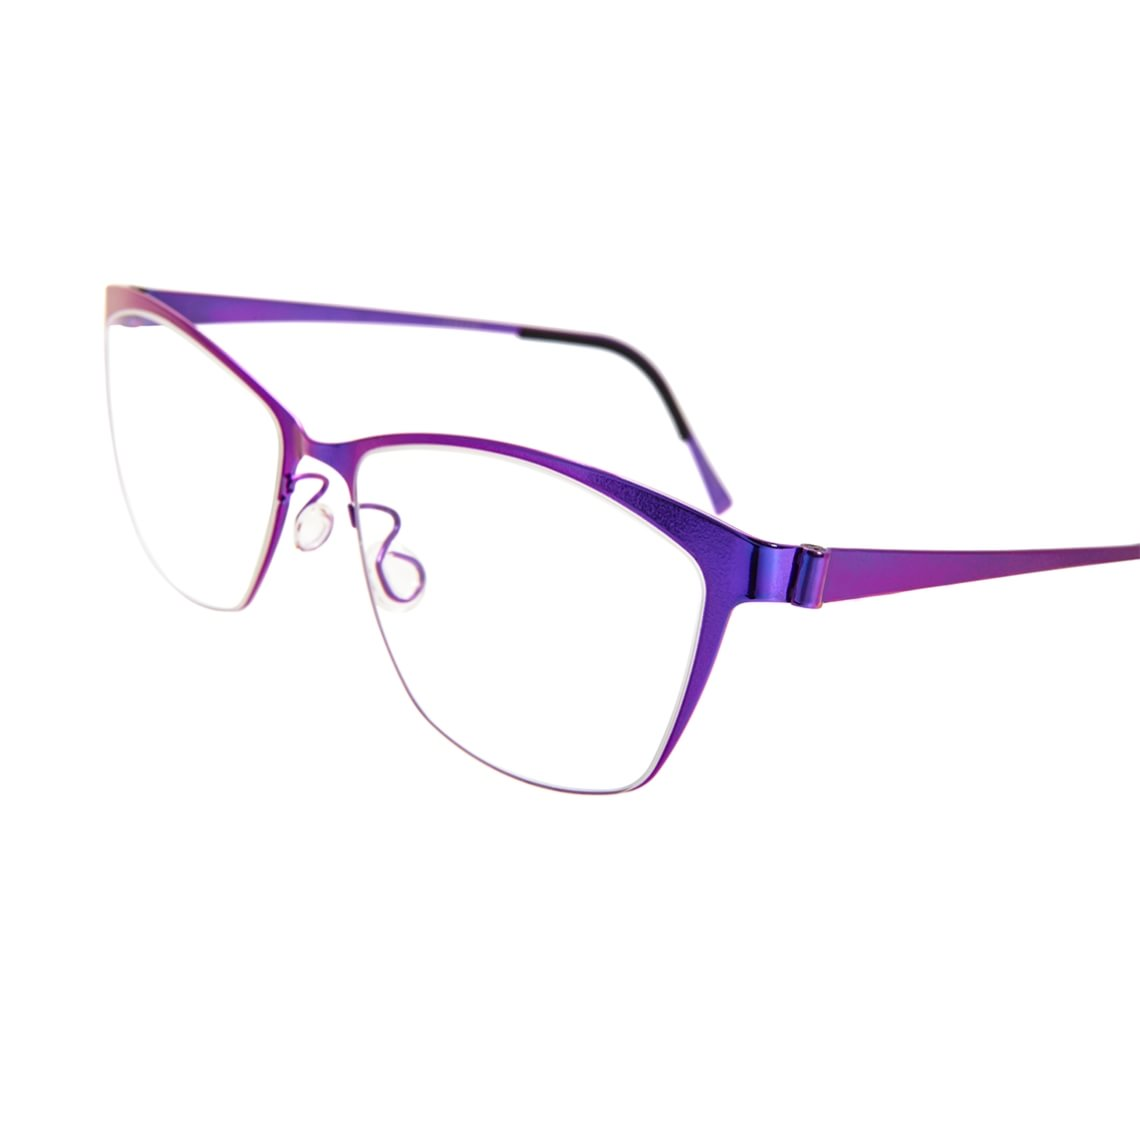 Lindberg Strip 9500 9554 temple 402 P77